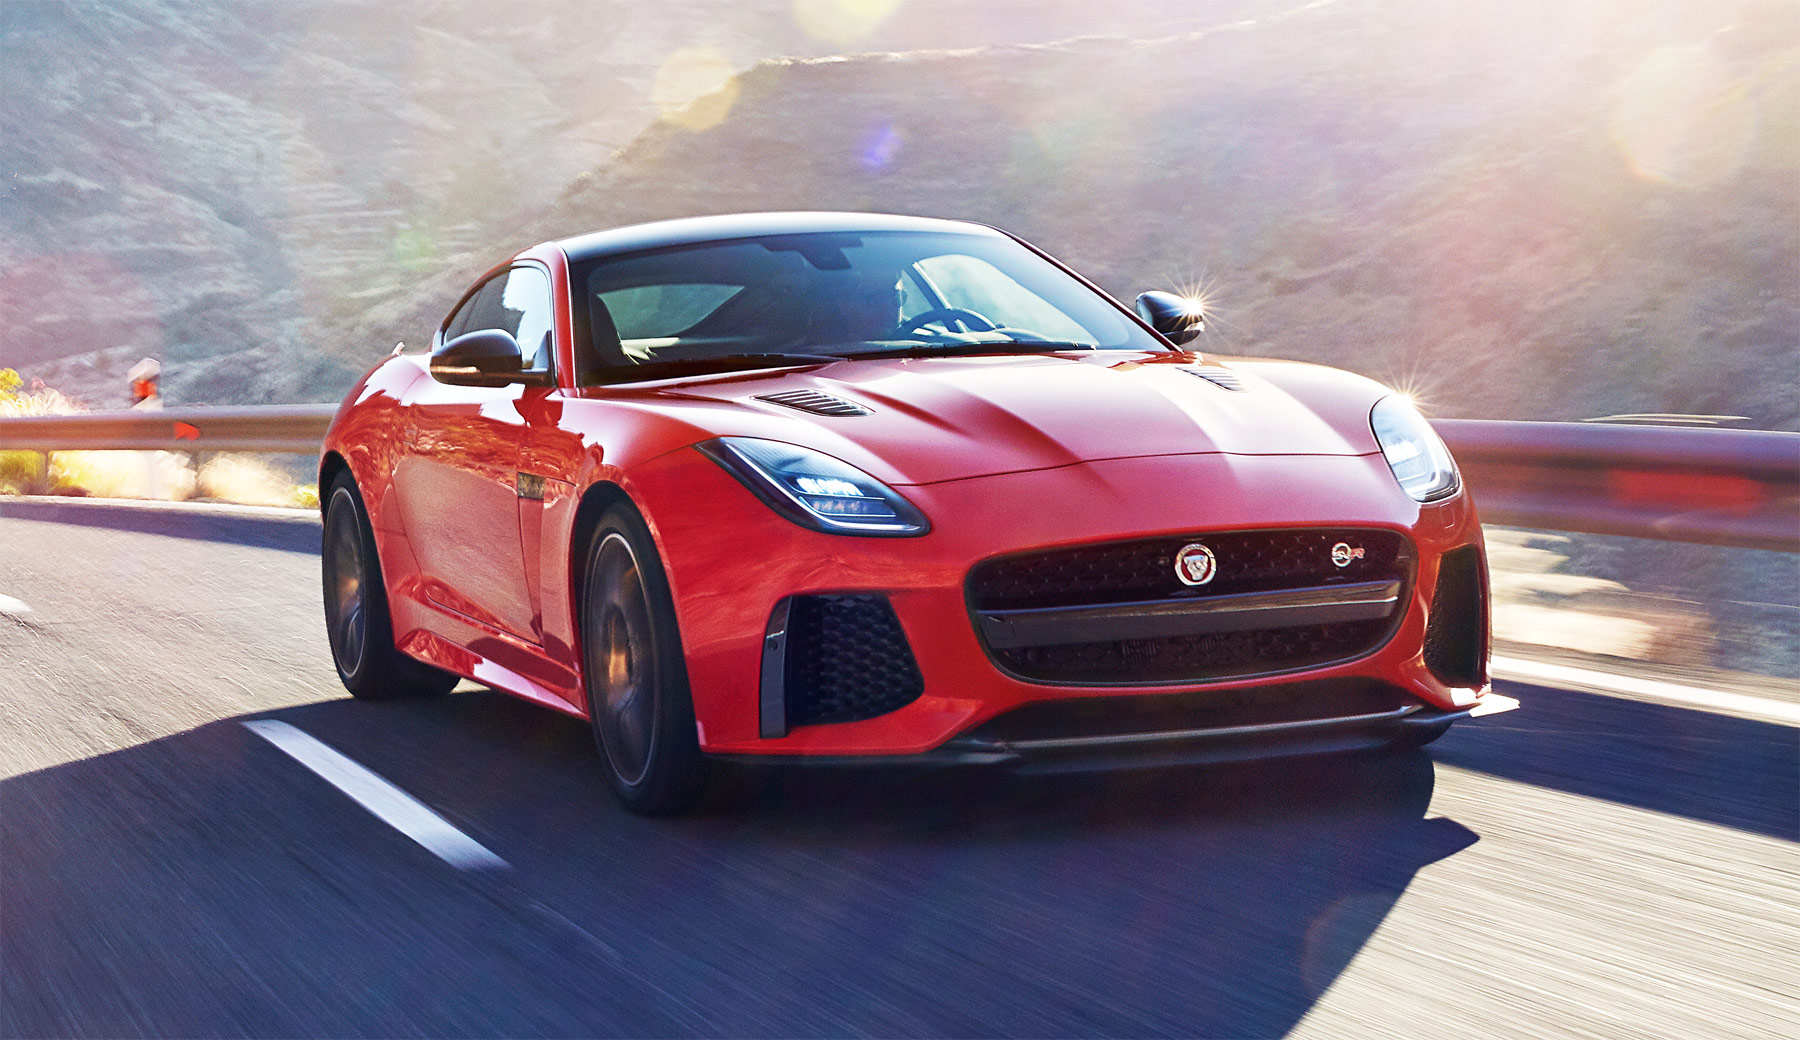 Style & Substance In Abundance - The New Jaguar F-TYPE